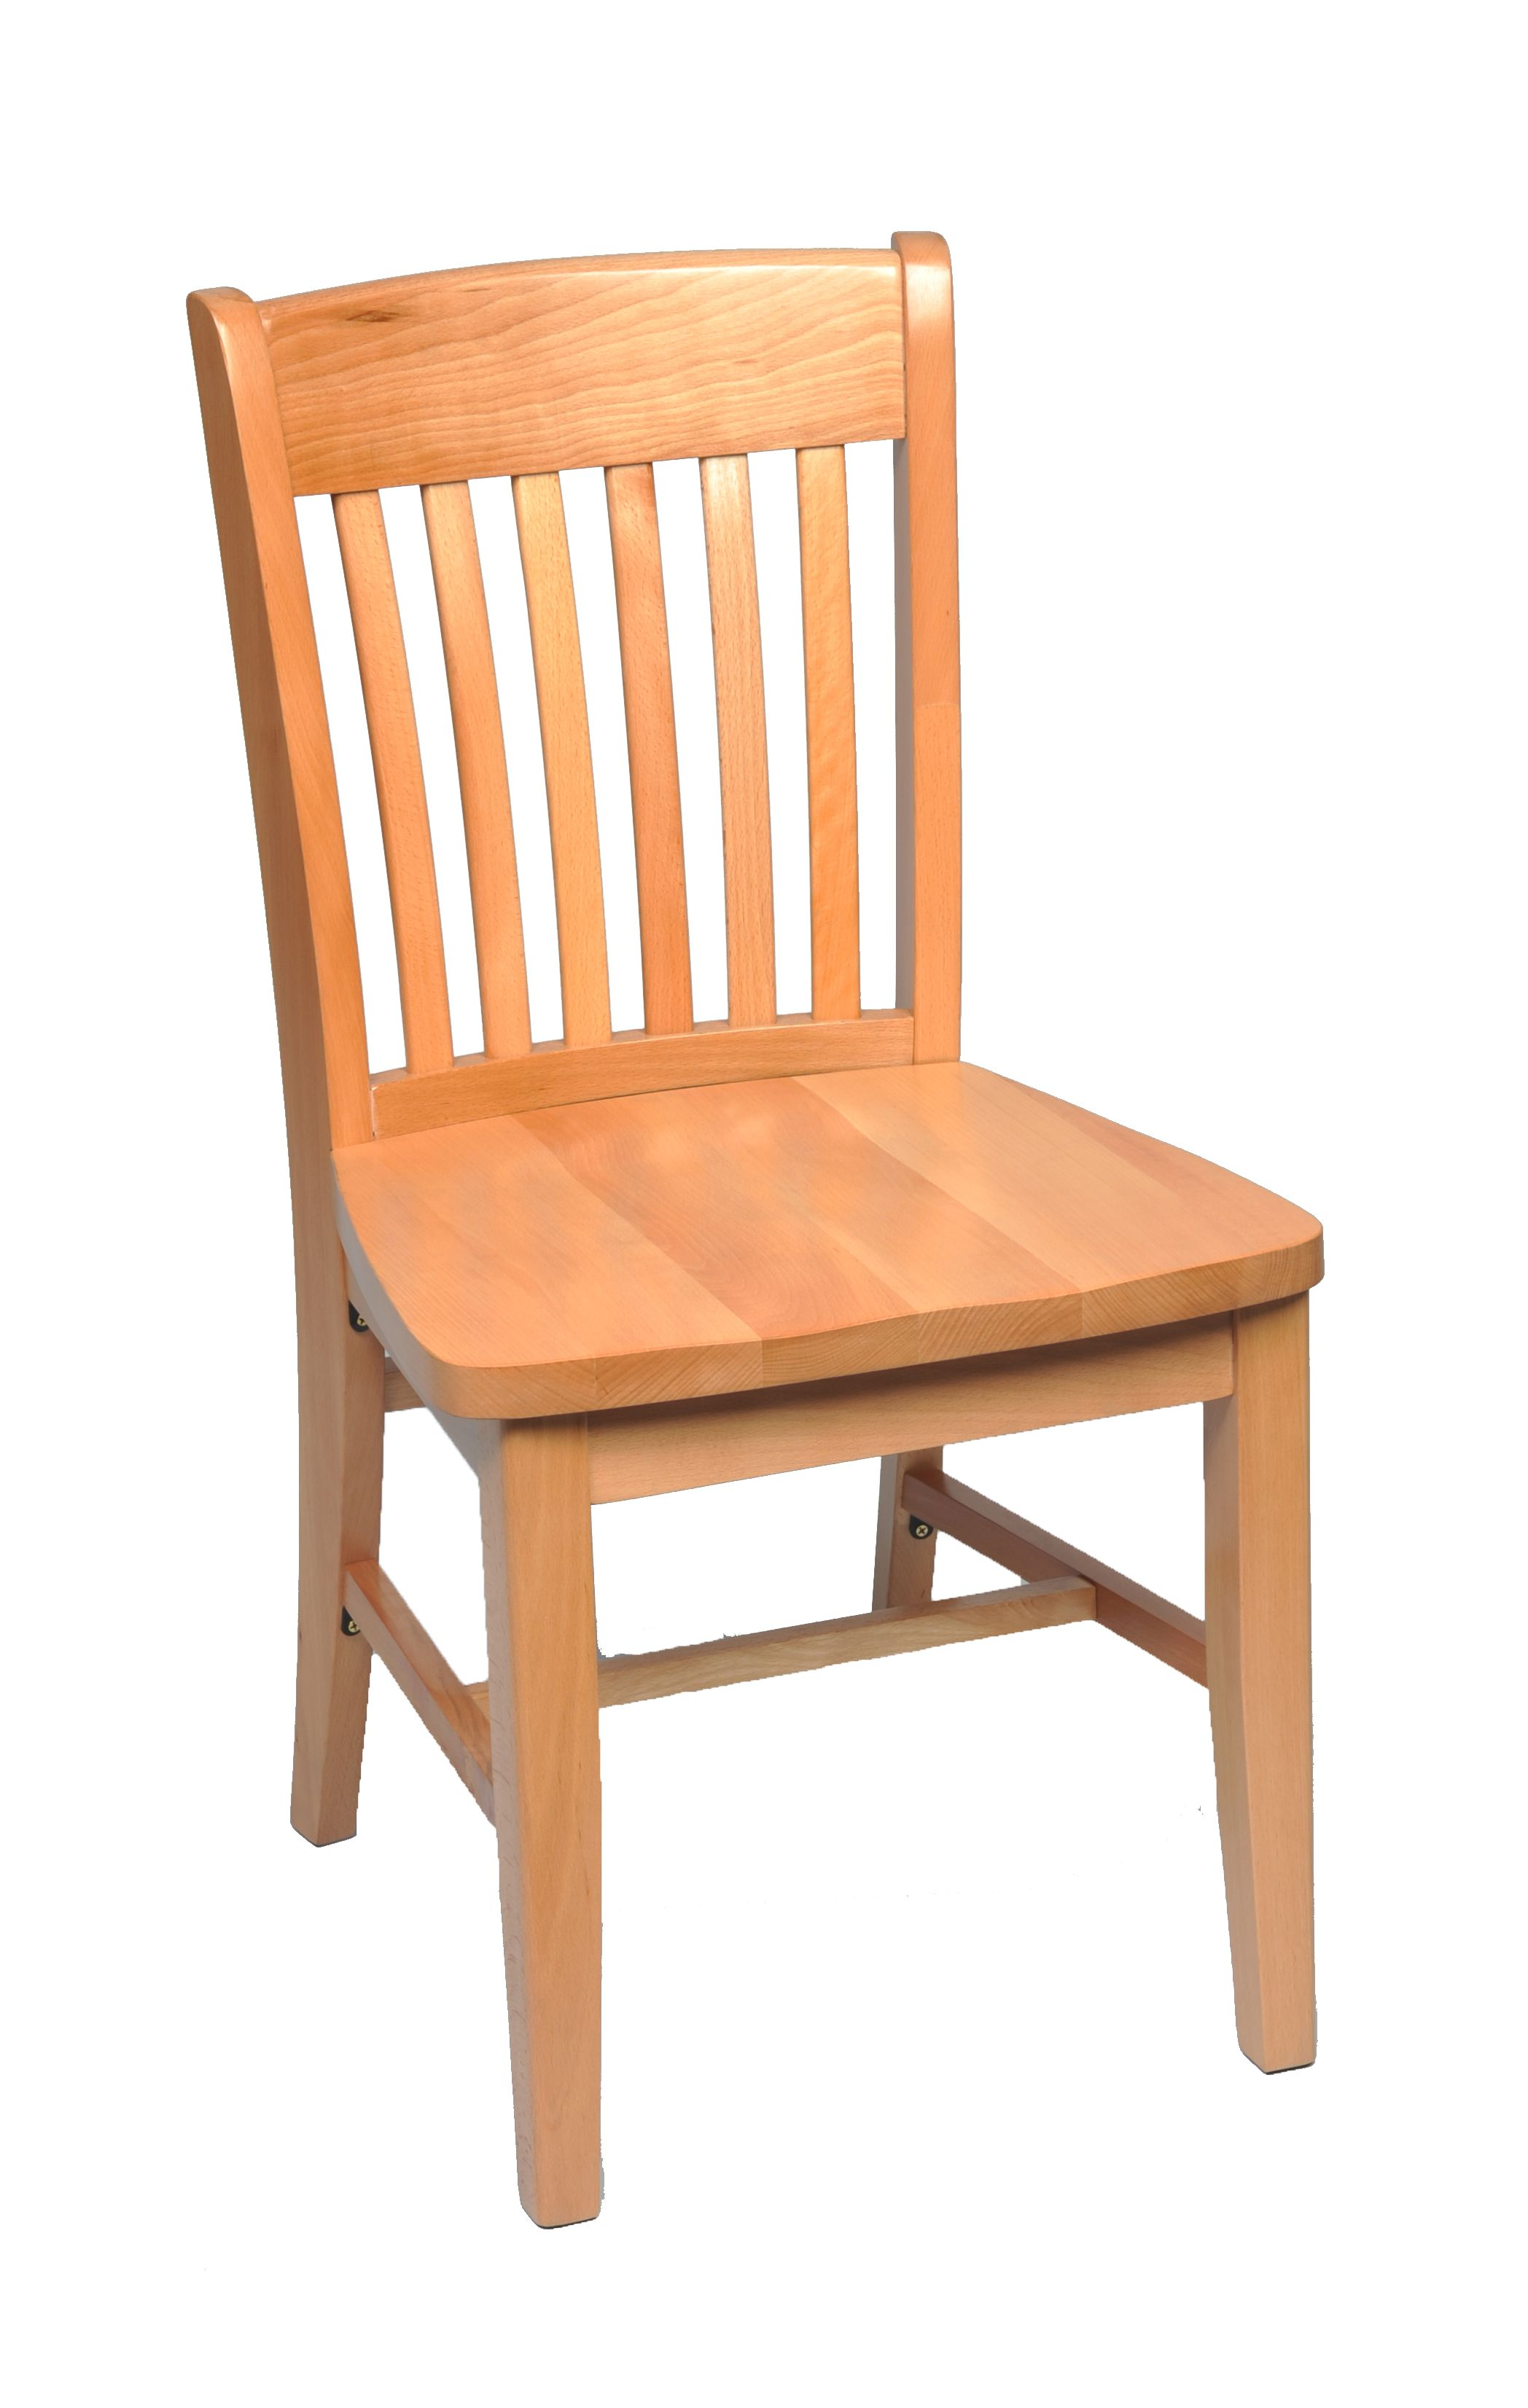 Solid wood dining chair schoolhouse solid wood dining for Wooden dining room chairs